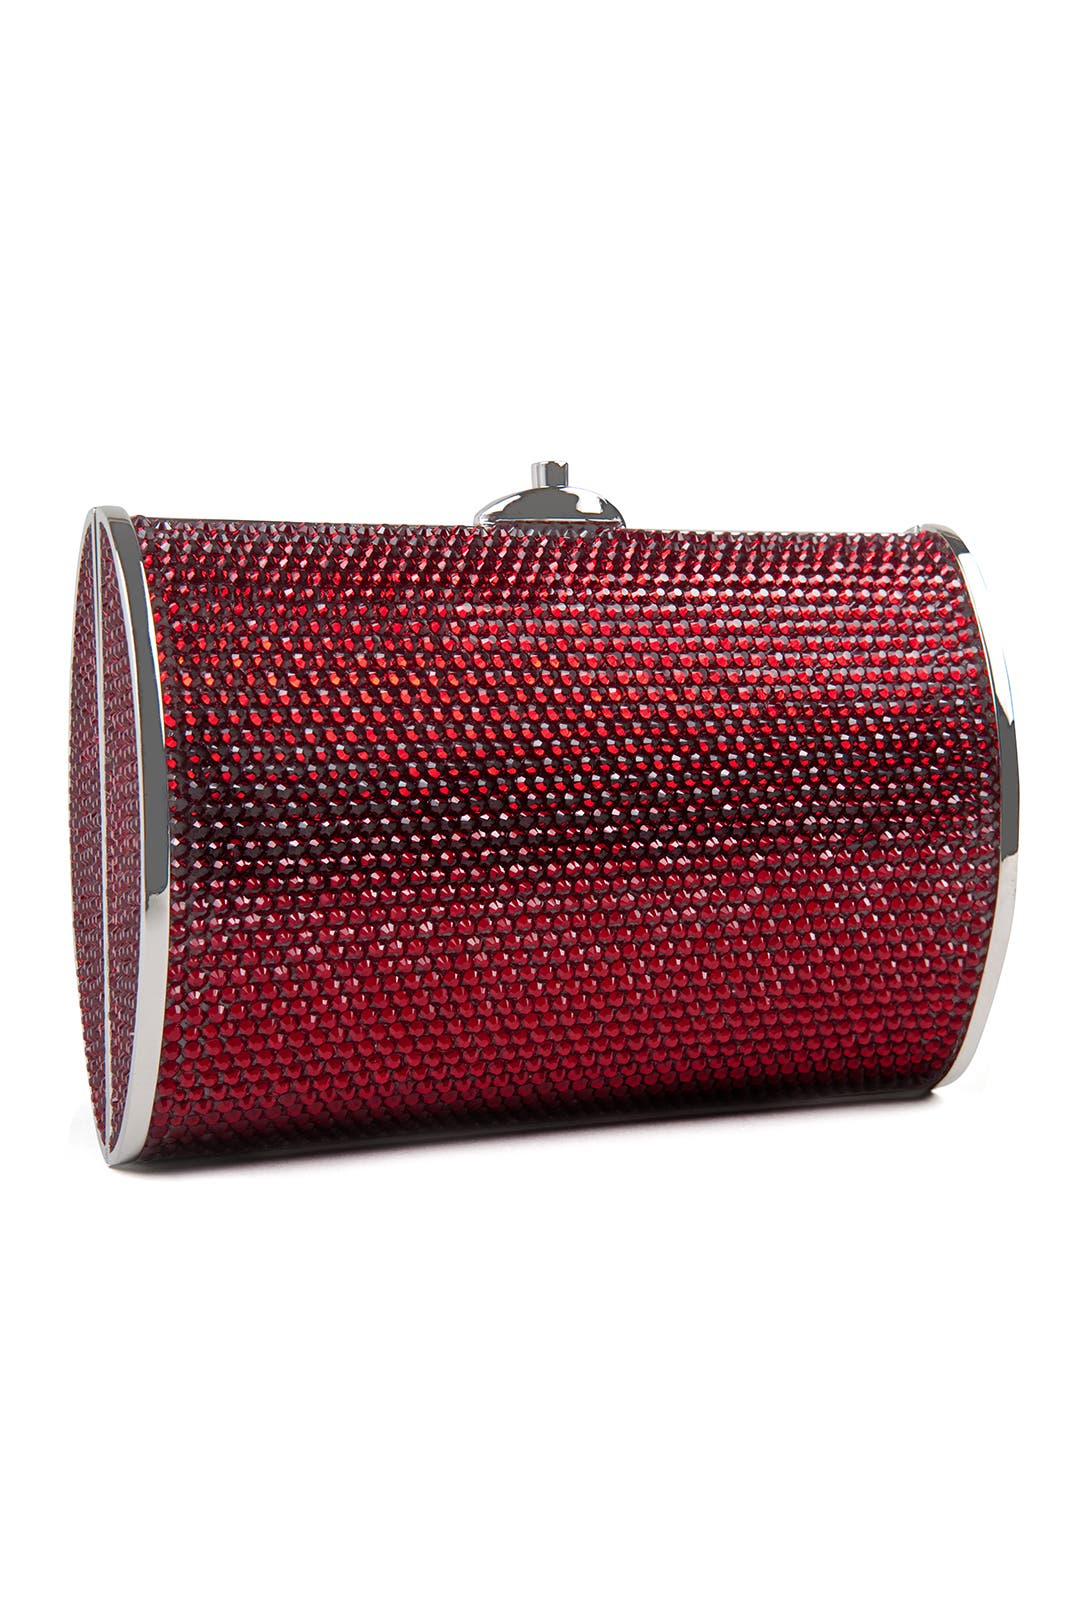 Cherry Bomb Clutch by Judith Leiber